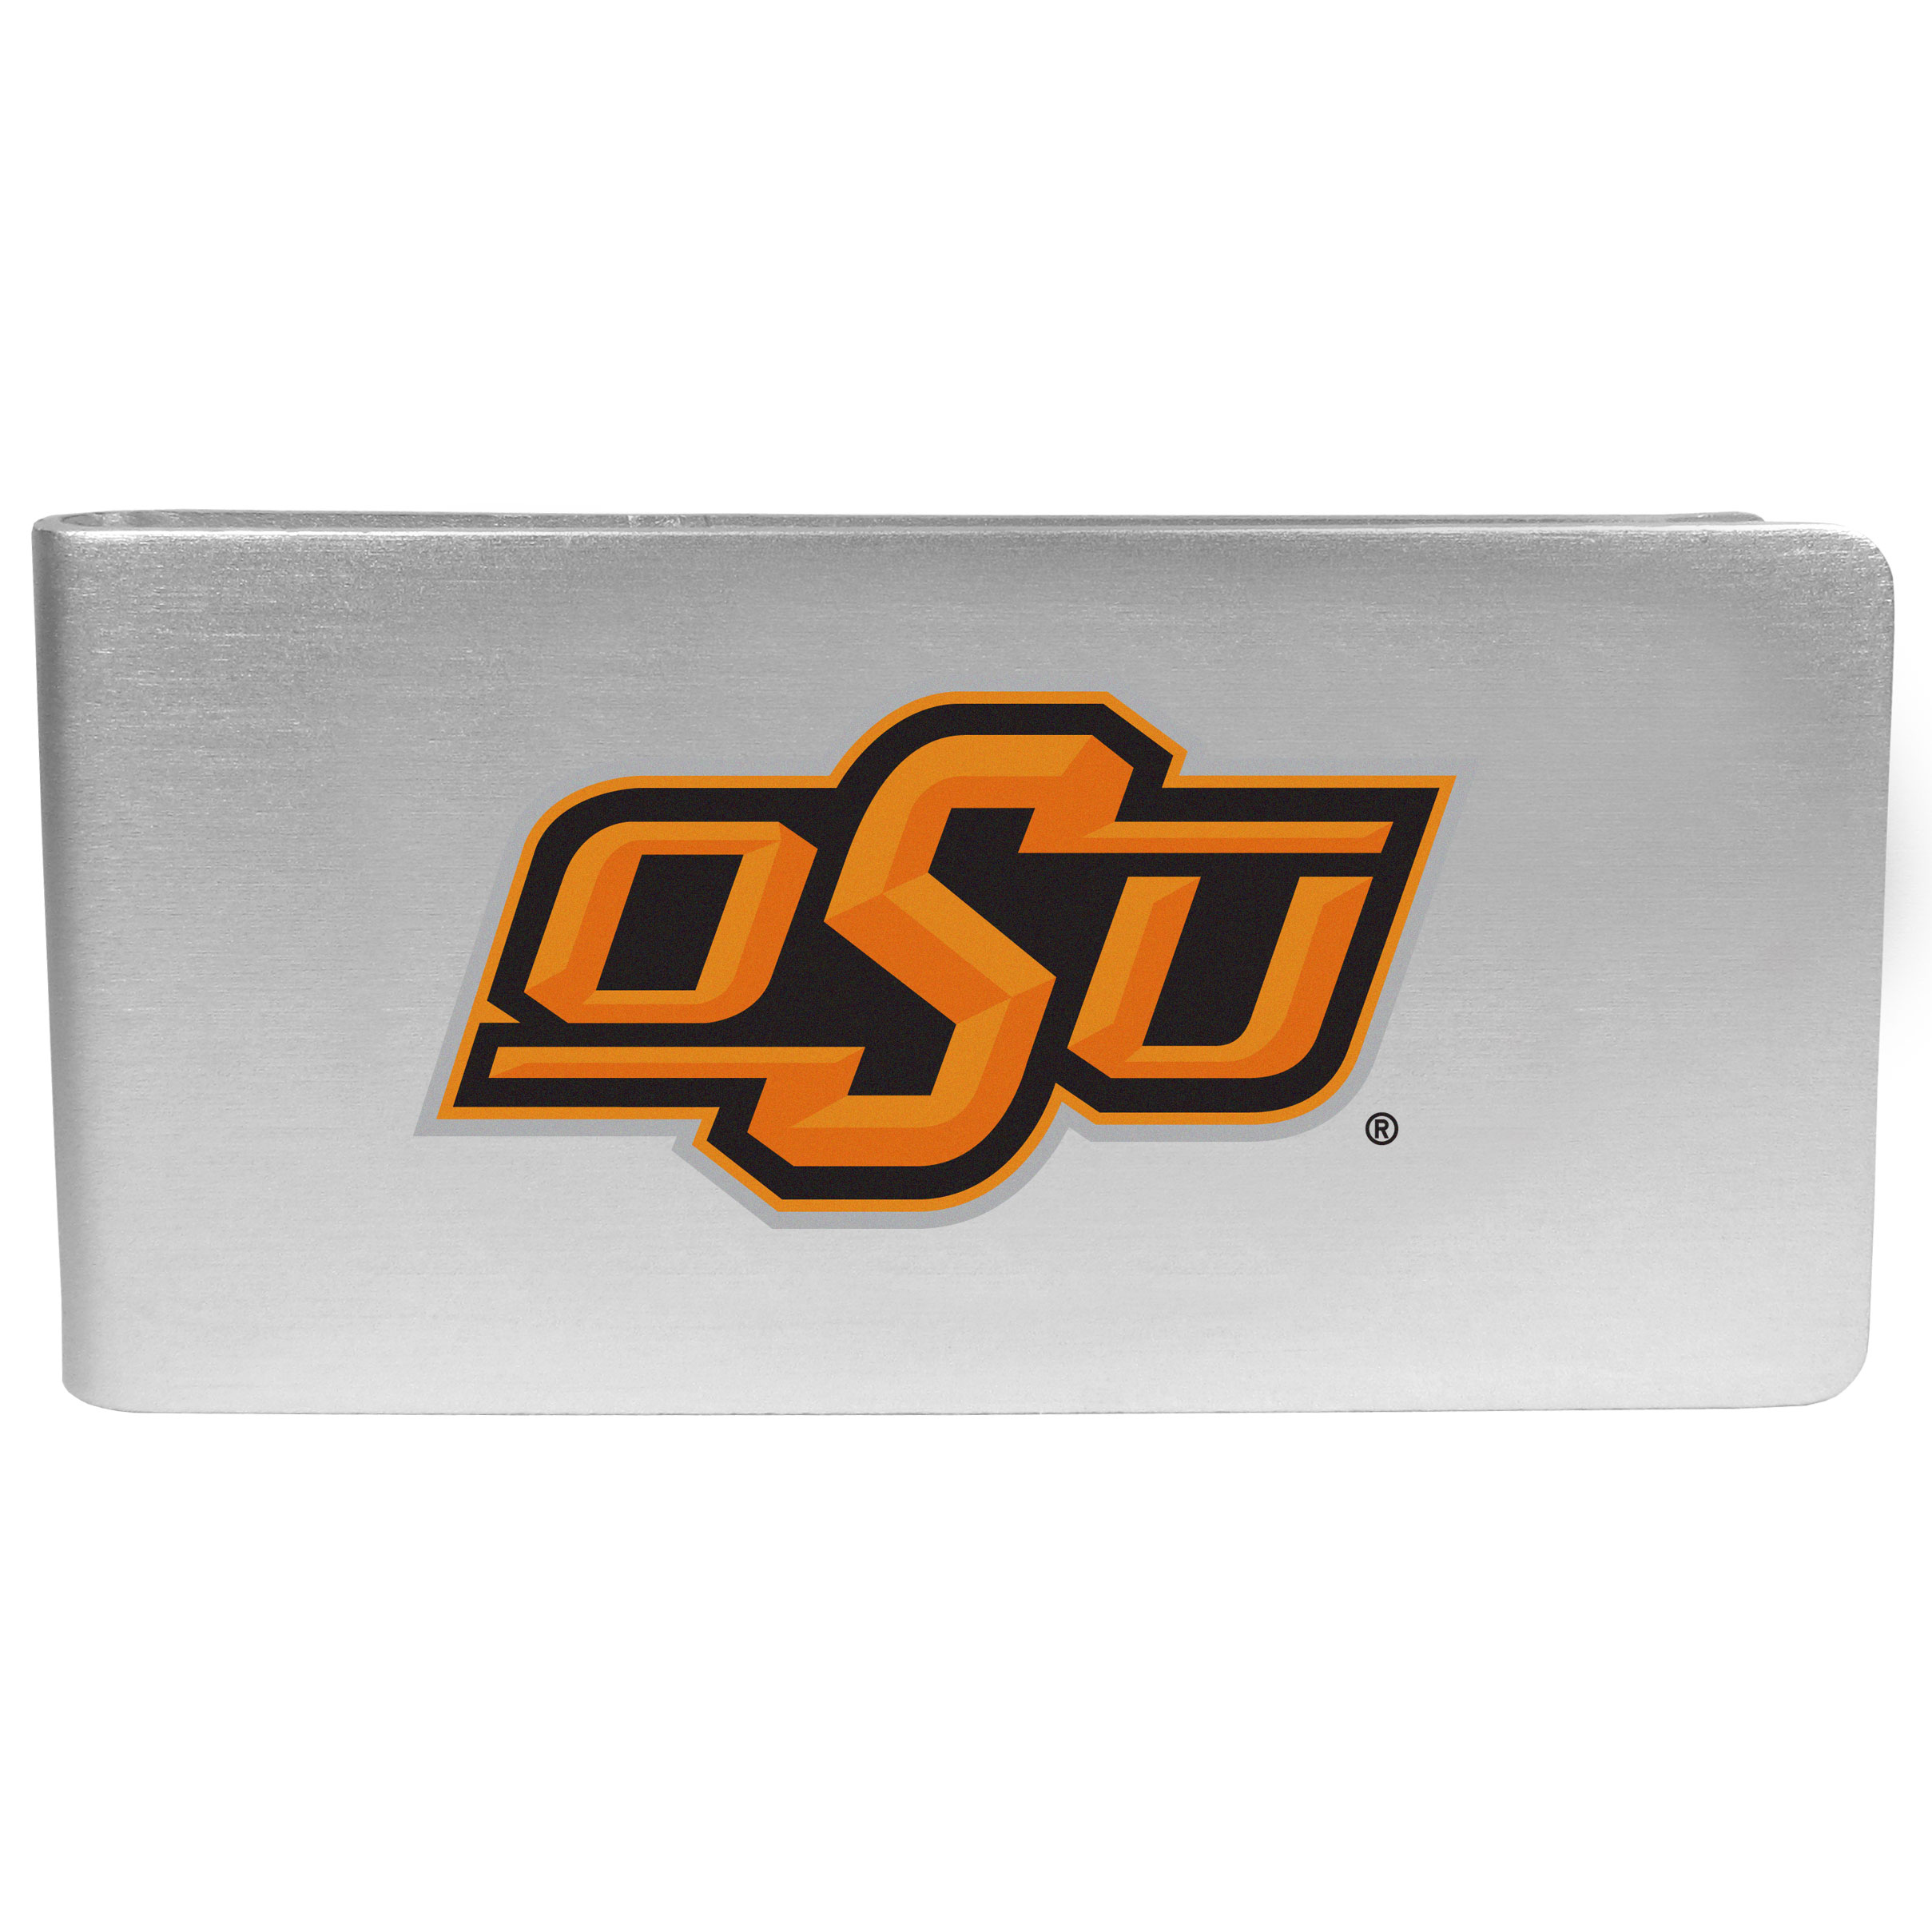 Oklahoma St. Cowboys Logo Money Clip - Our brushed metal money clip has classic style and functionality. The attractive clip features the Oklahoma St. Cowboys logo expertly printed on front.